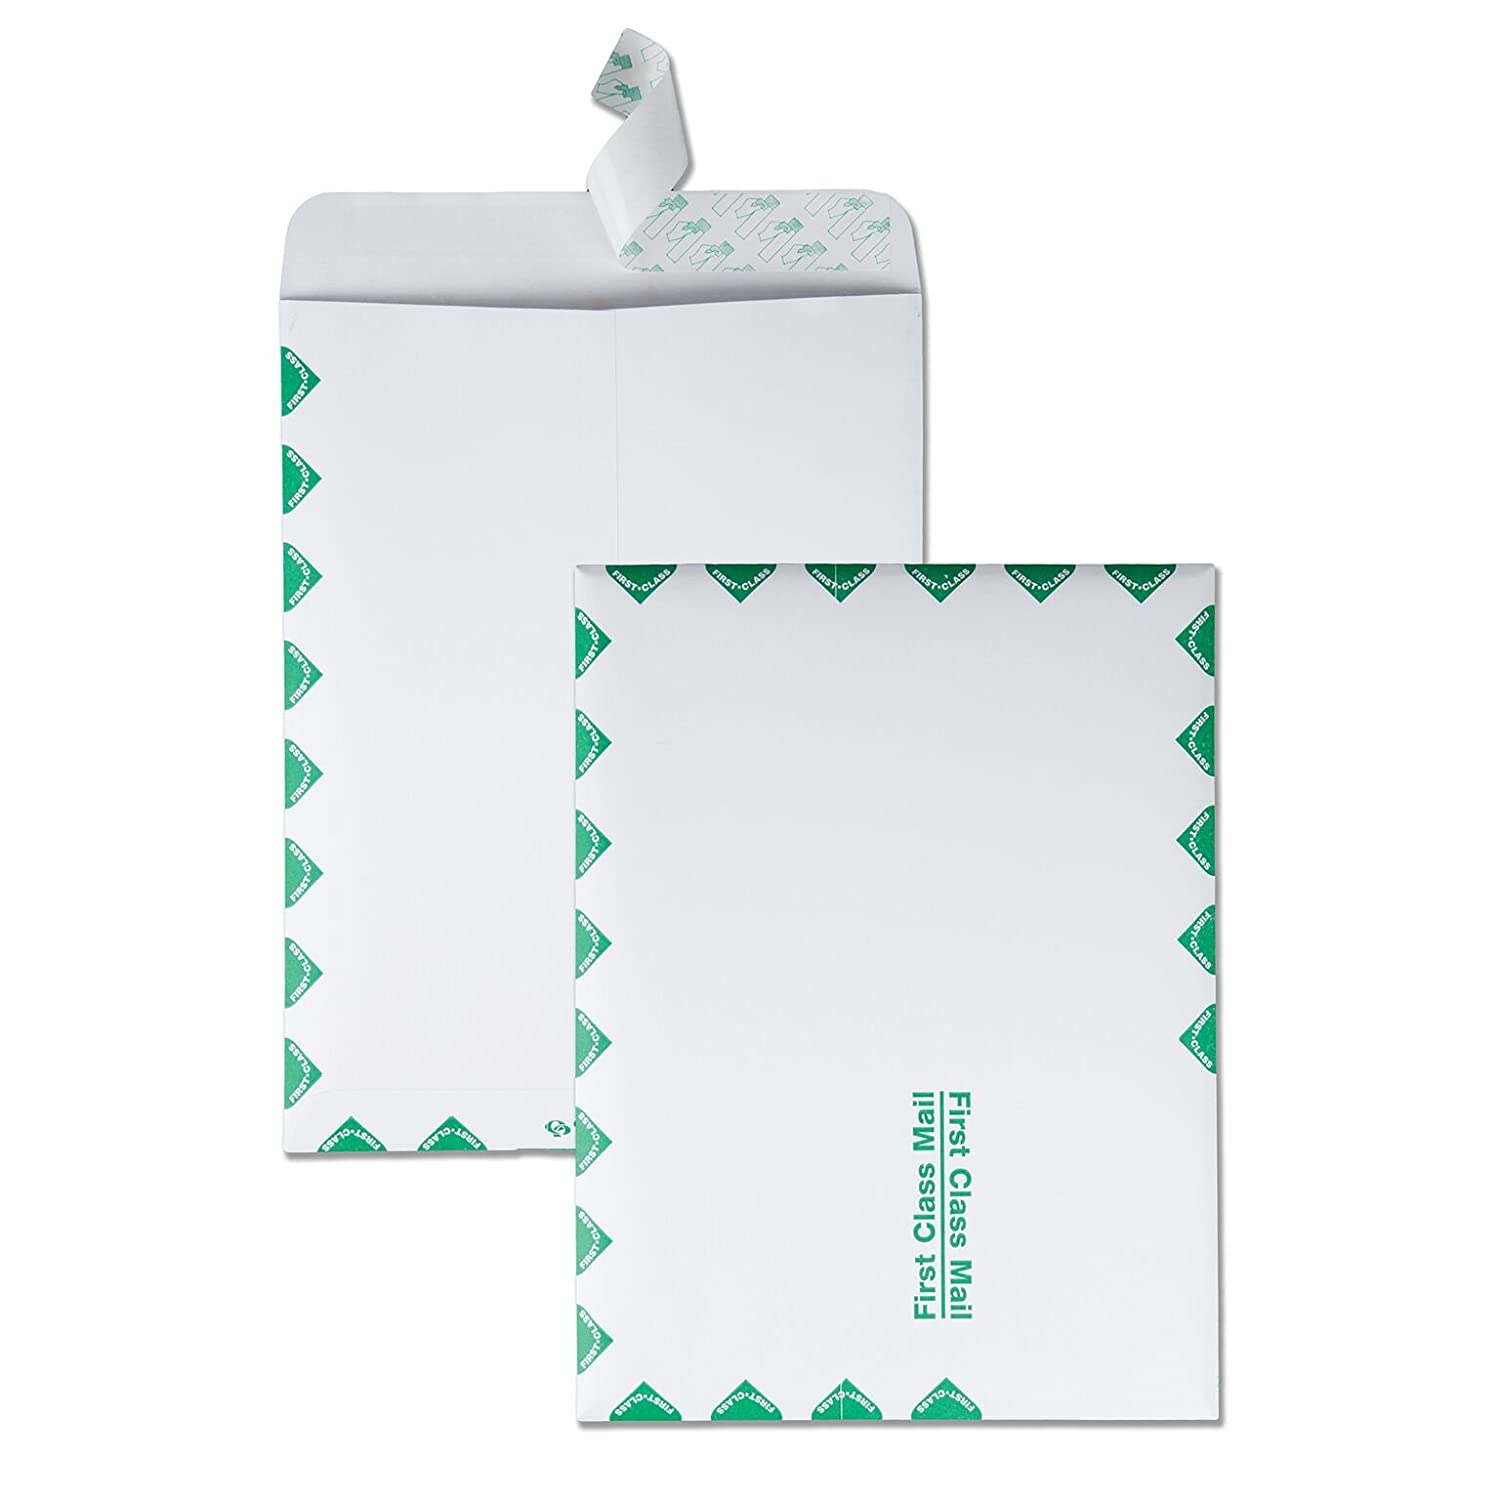 Quality Park Redi-Strip Catalog Envelope, 9 X 12-Inch, First Class Border, Box of 100, White (44534)